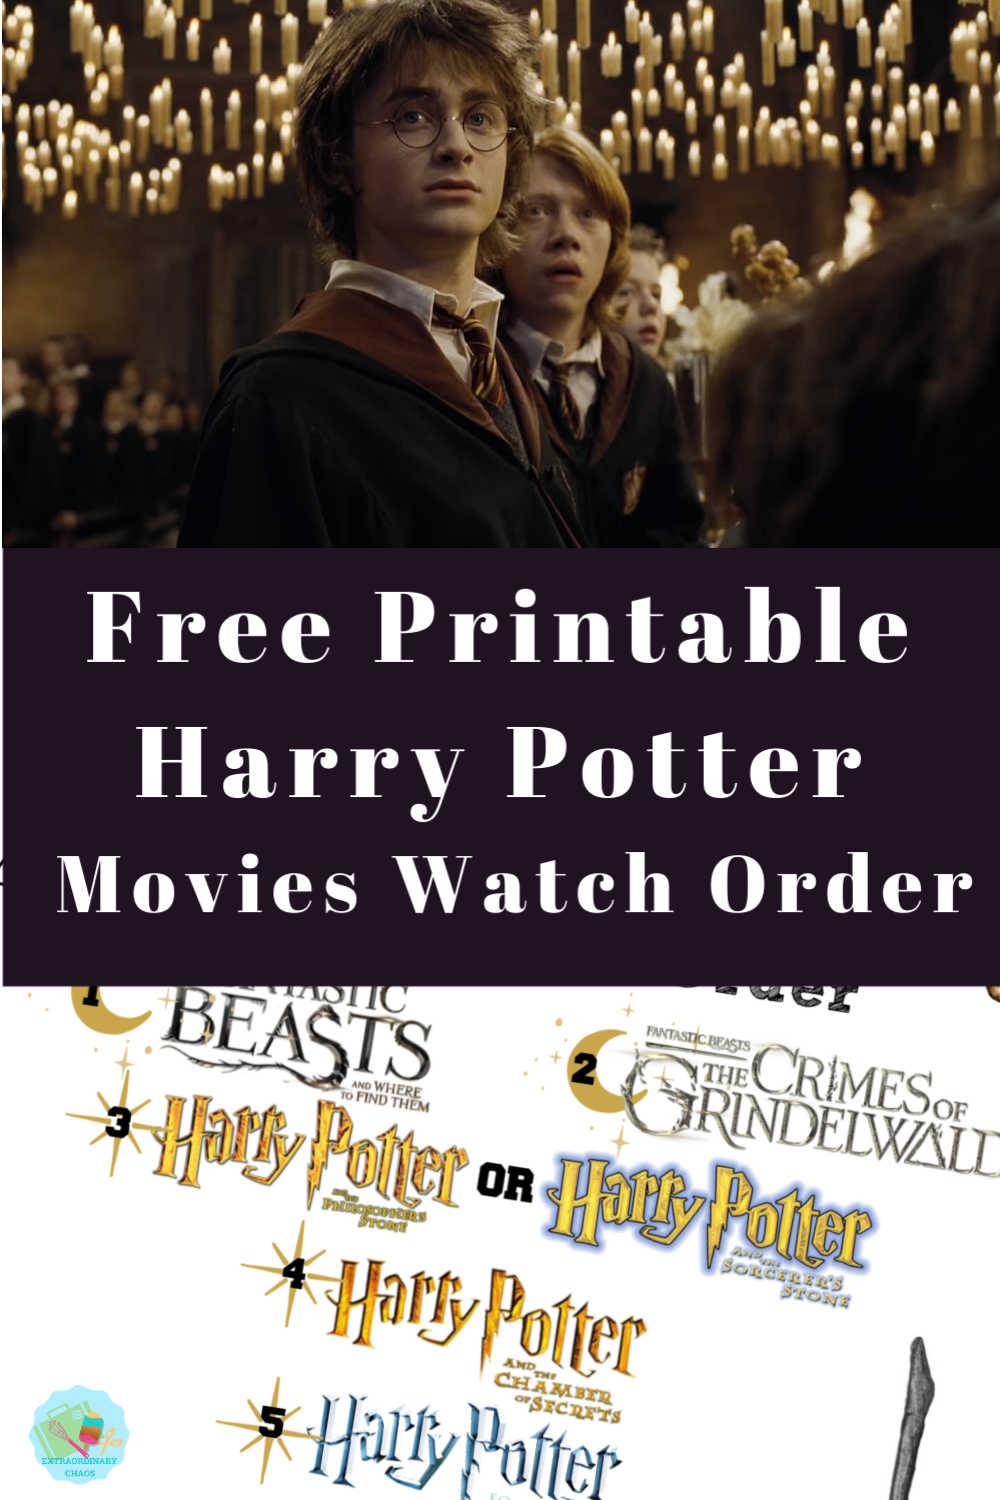 Free Printable Harry Potter Movies Watch Order